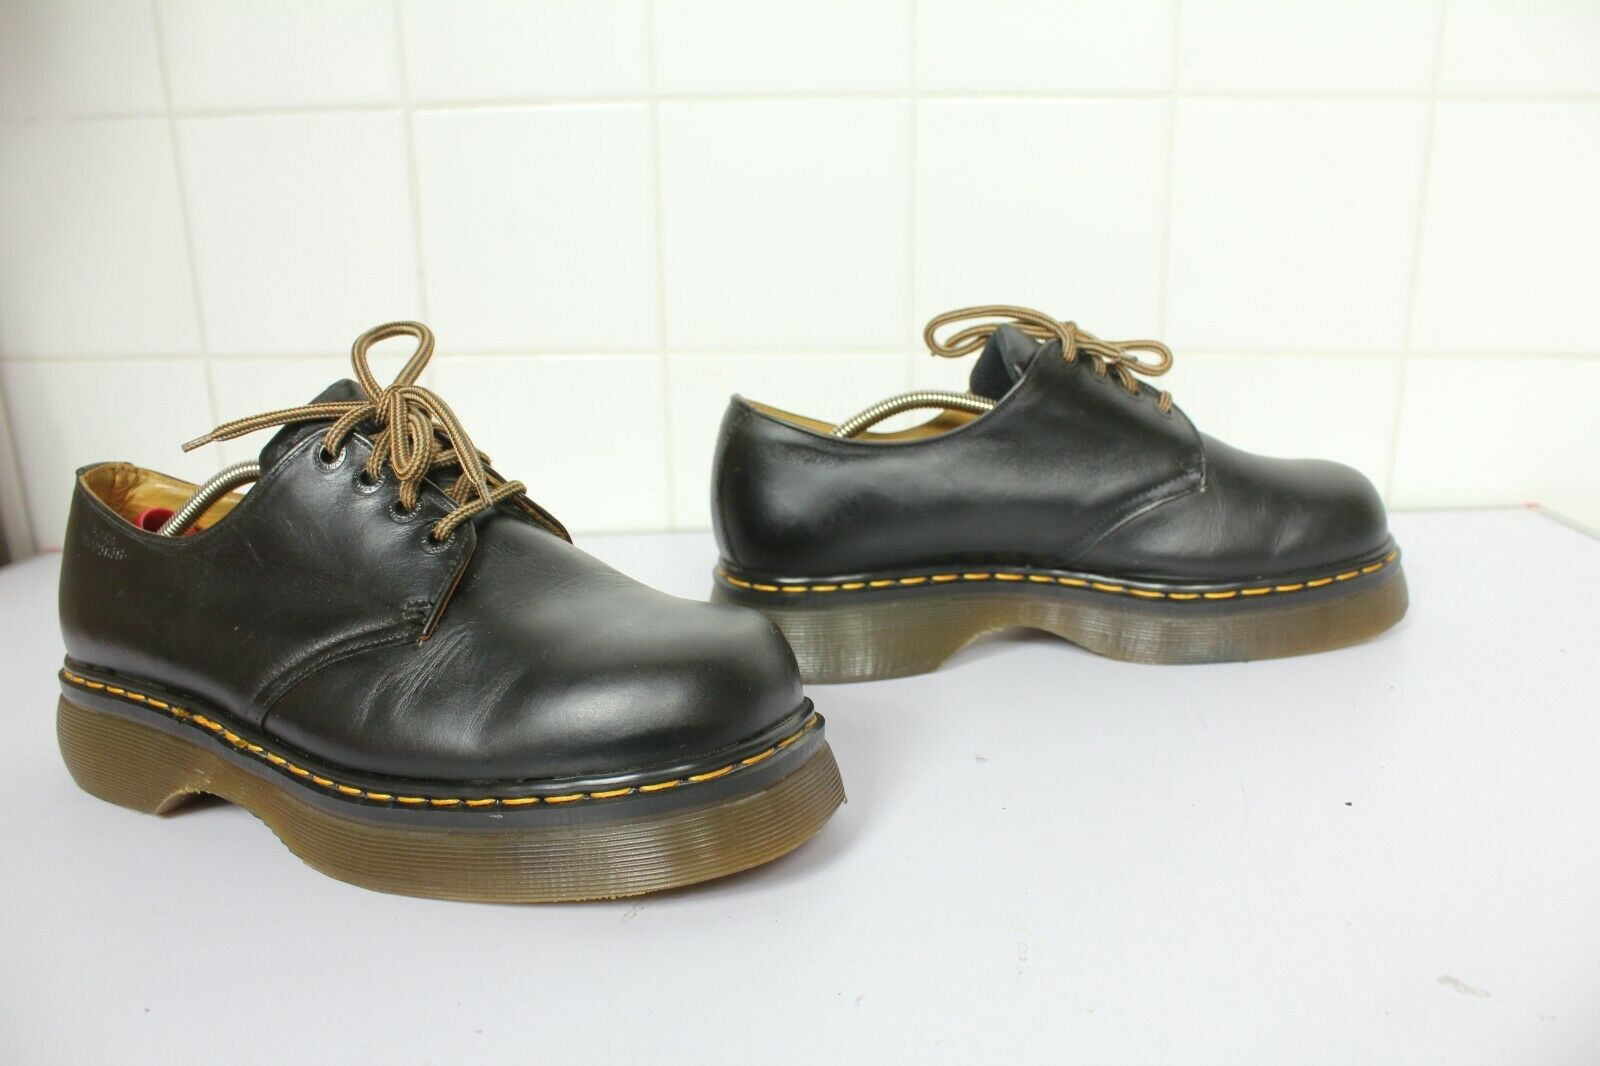 Vintage Rare 90's Platform Herrenschuhe Schwarz Eu 46-Uk 11 made in England